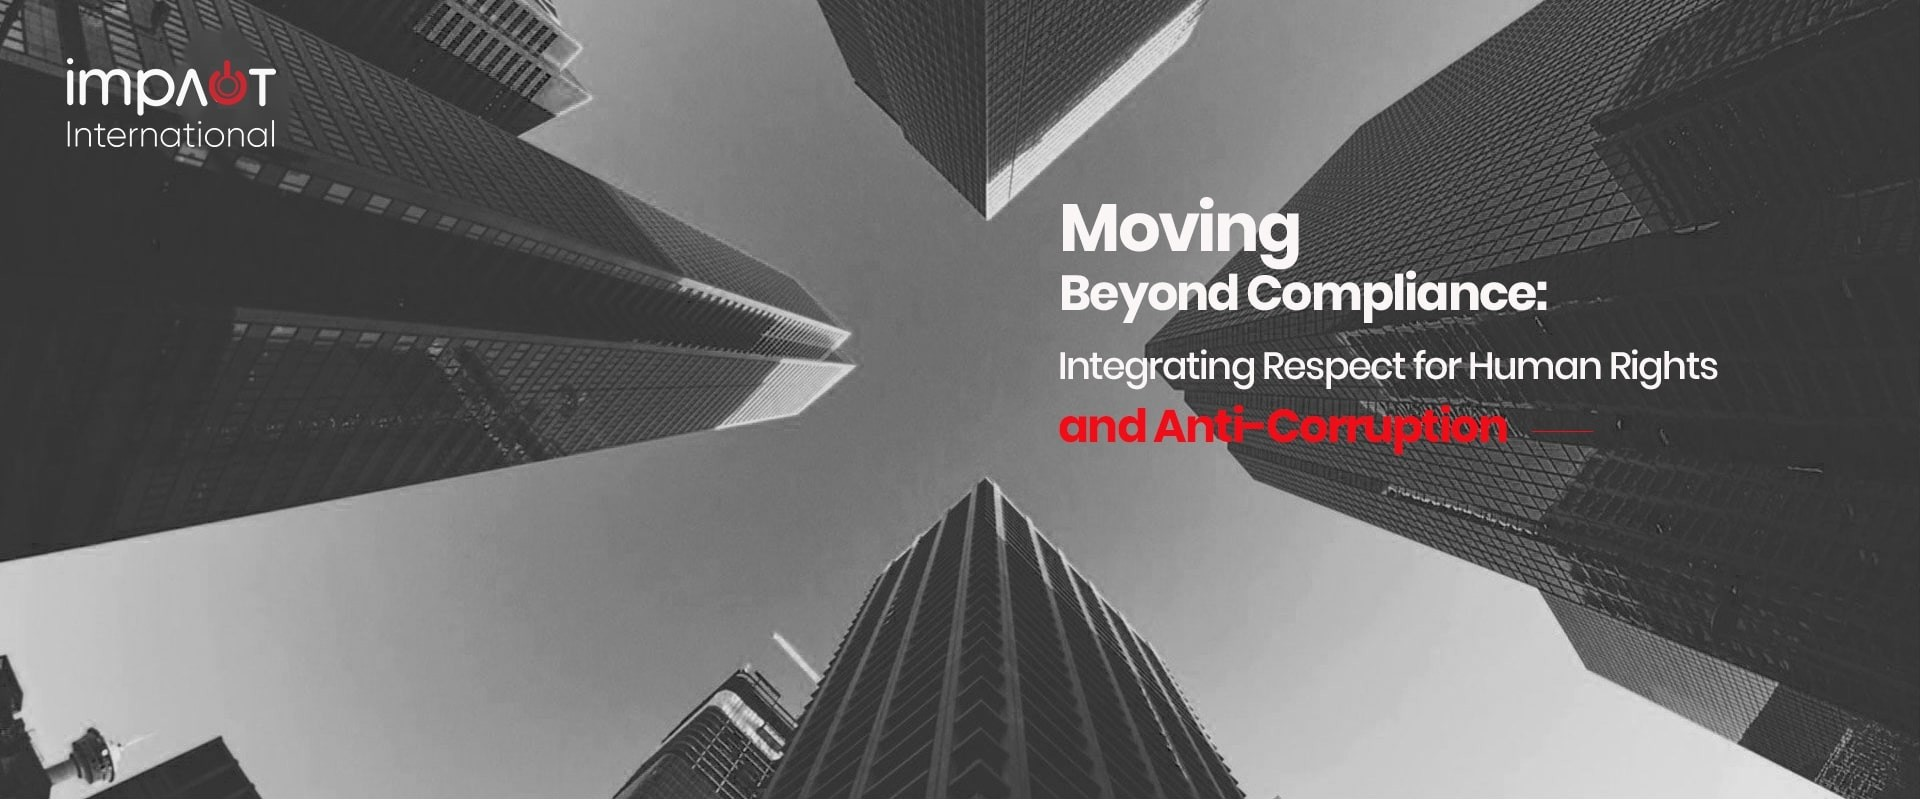 Moving Beyond Compliance: Integrating Respect for Human Rights and Anti-Corruption